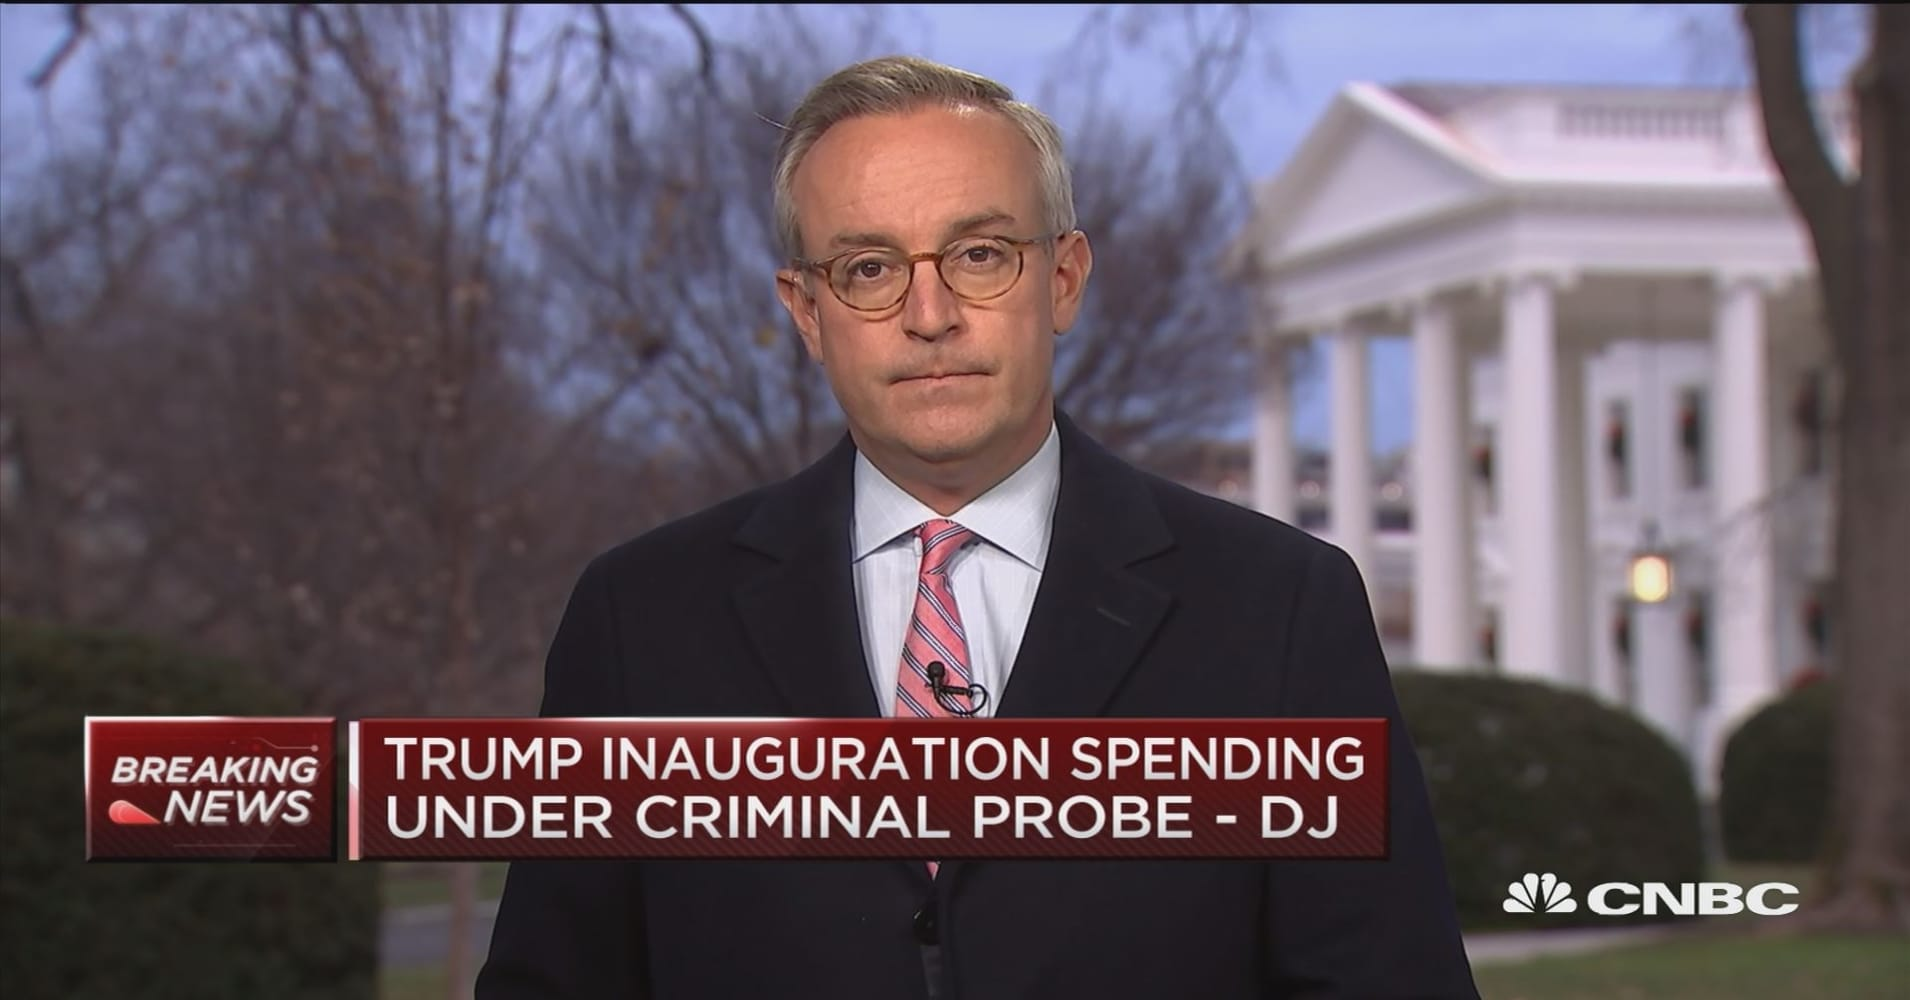 Trump inauguration spending reportedly under criminal investigation by federal prosecutors